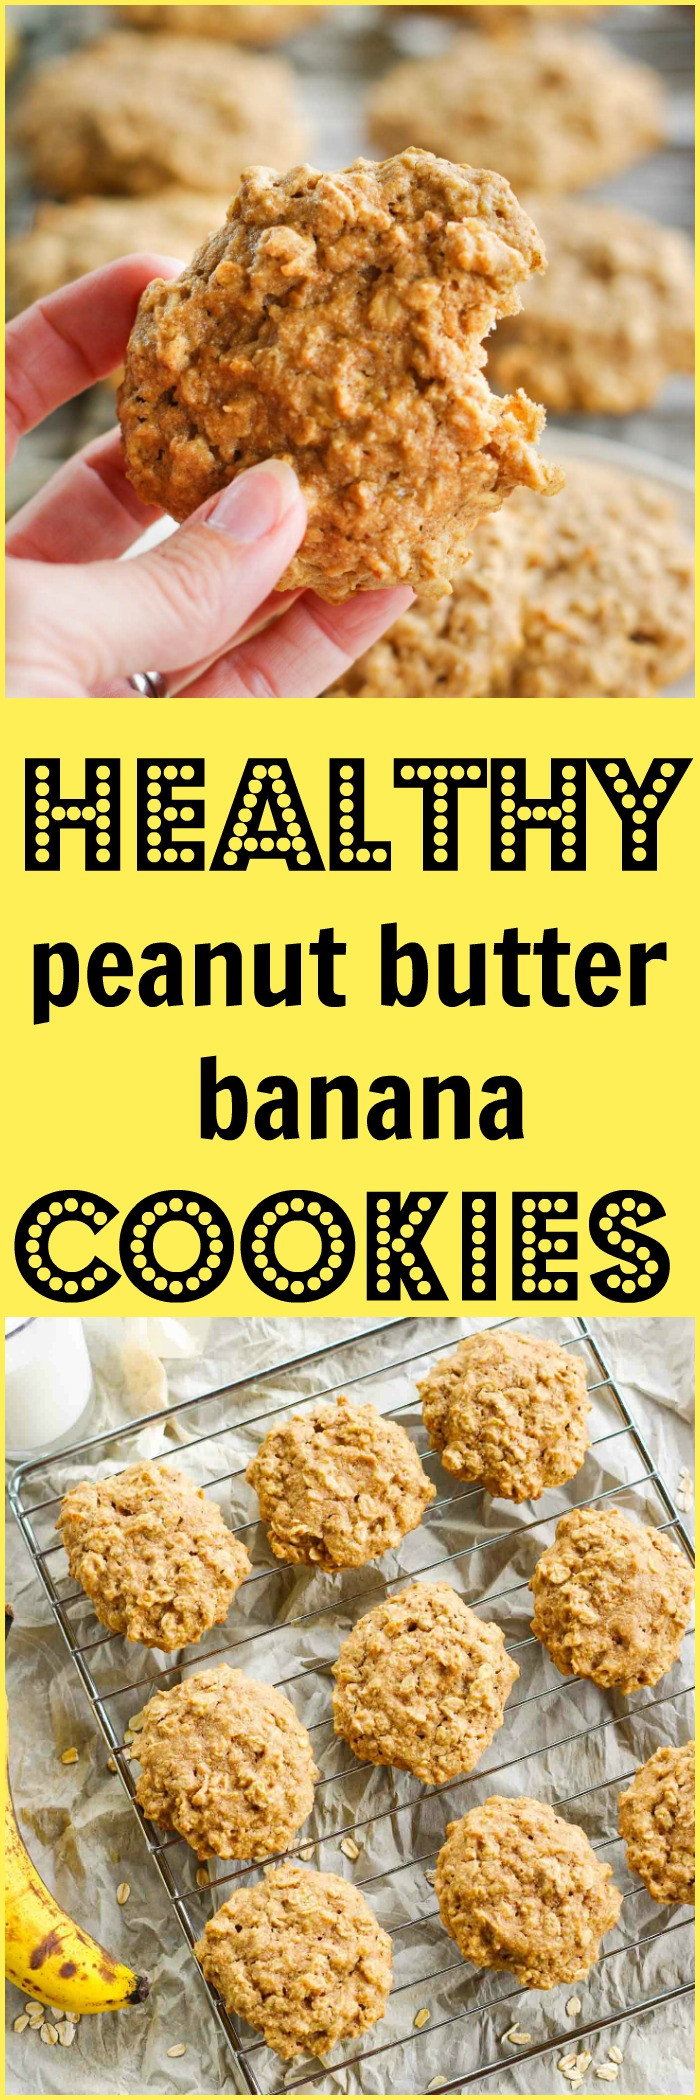 Healthy Peanut Butter Banana Cookies  Healthy Peanut Butter Banana Cookies – Dan330